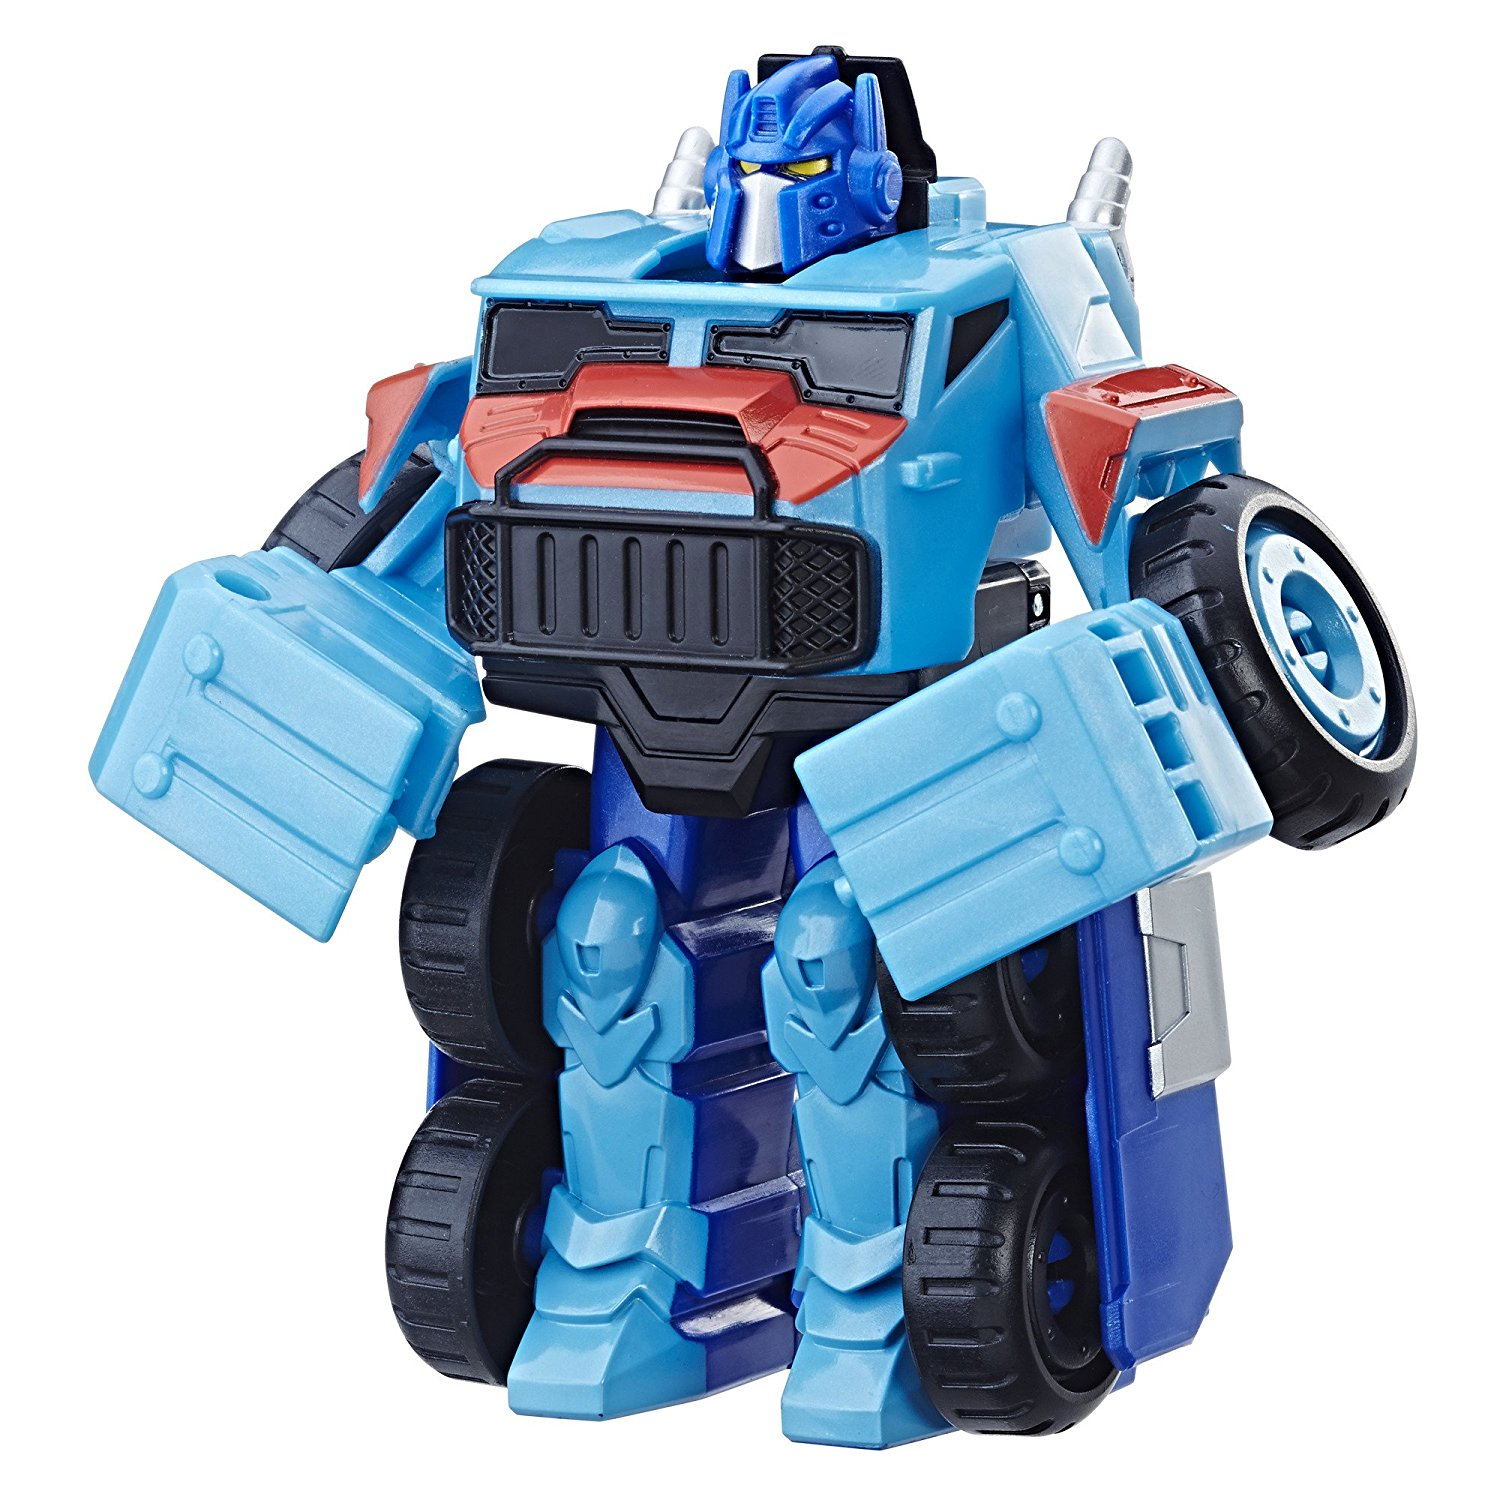 Heroes Transformers Rescue Bots Optimus Prime, Features Optimus Prime, a favorite... by